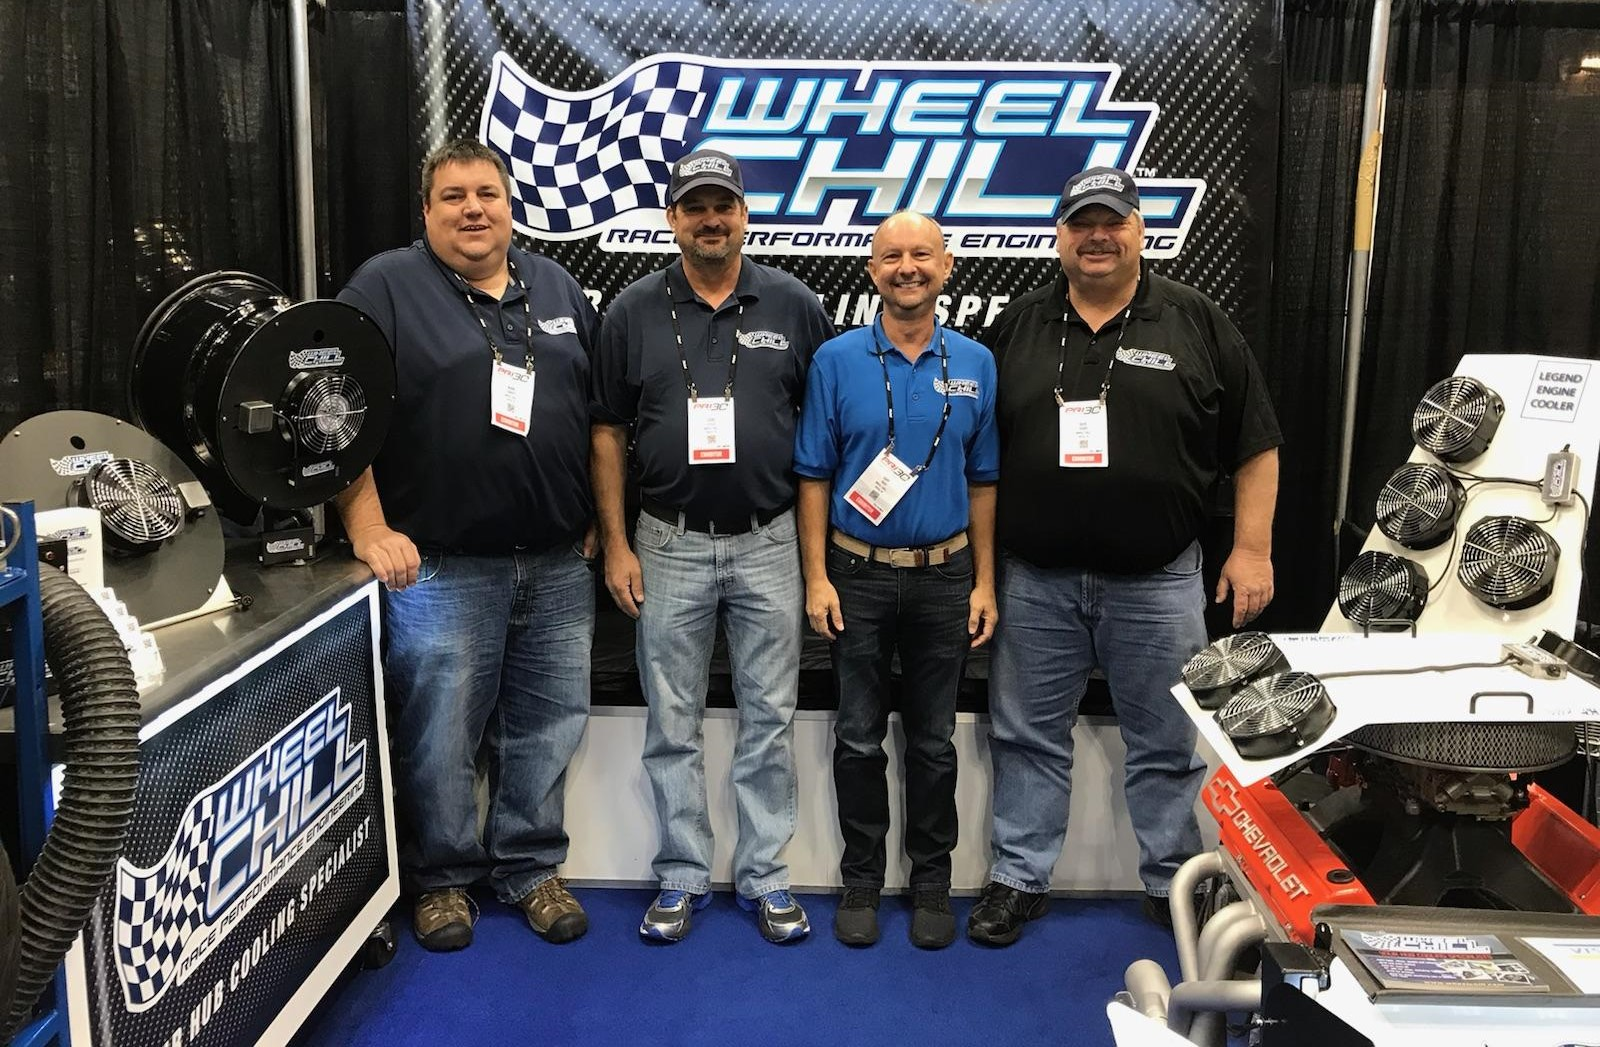 The Wheel Chill team at their PRI 2018 display